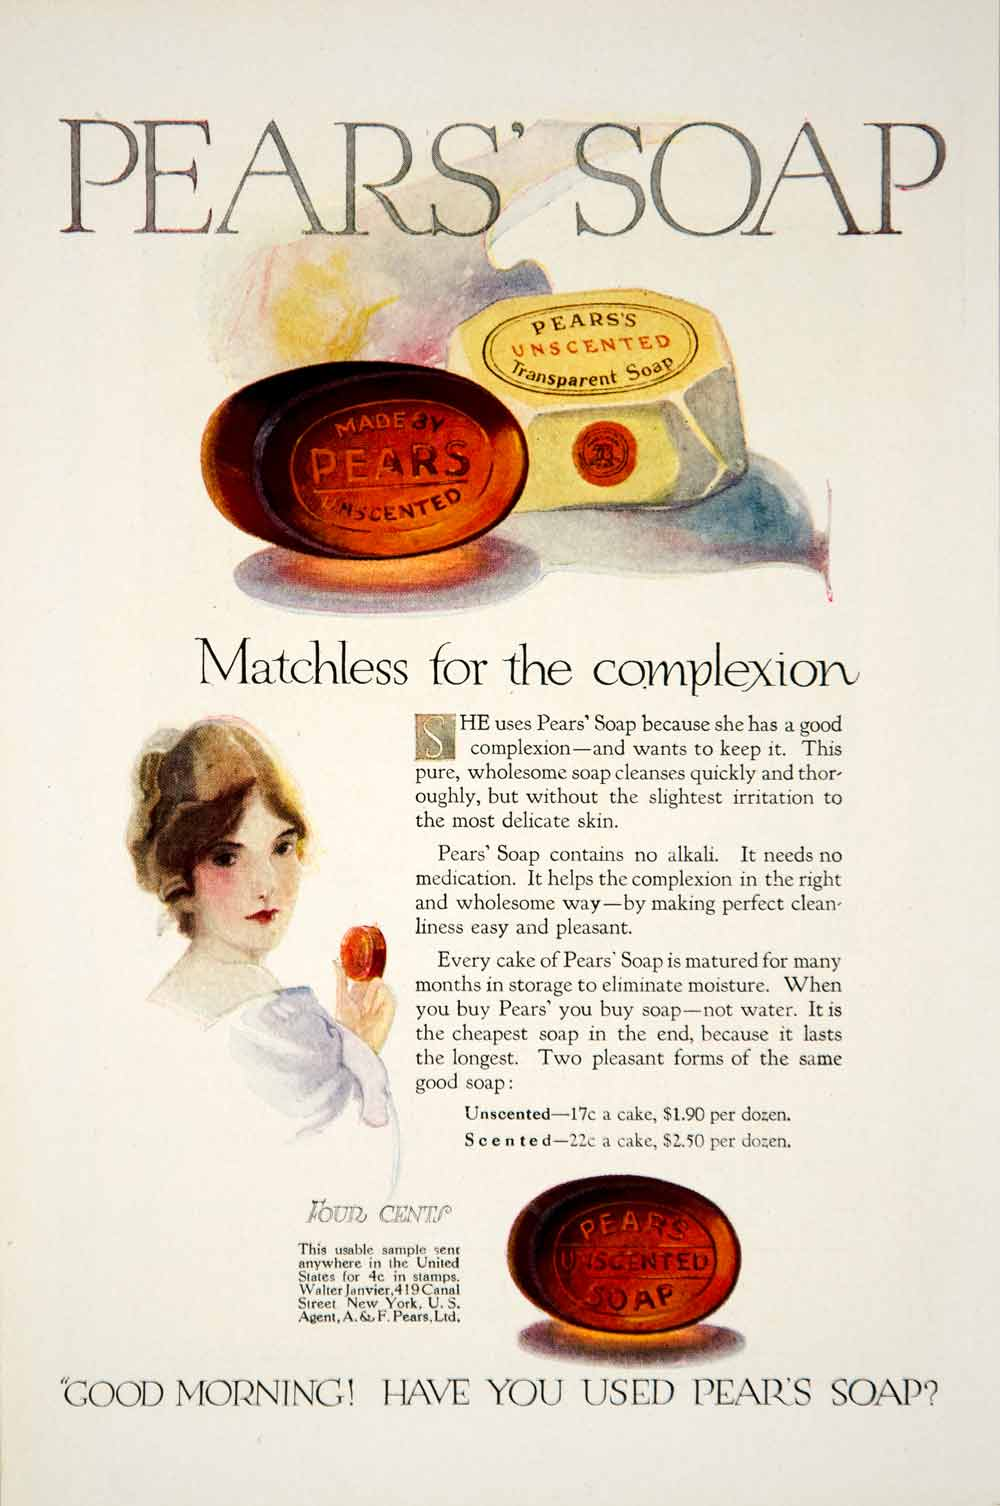 1919 Ad Walter Janvier Pears Soap Health Beauty Hygiene Cleansing Household YSC1